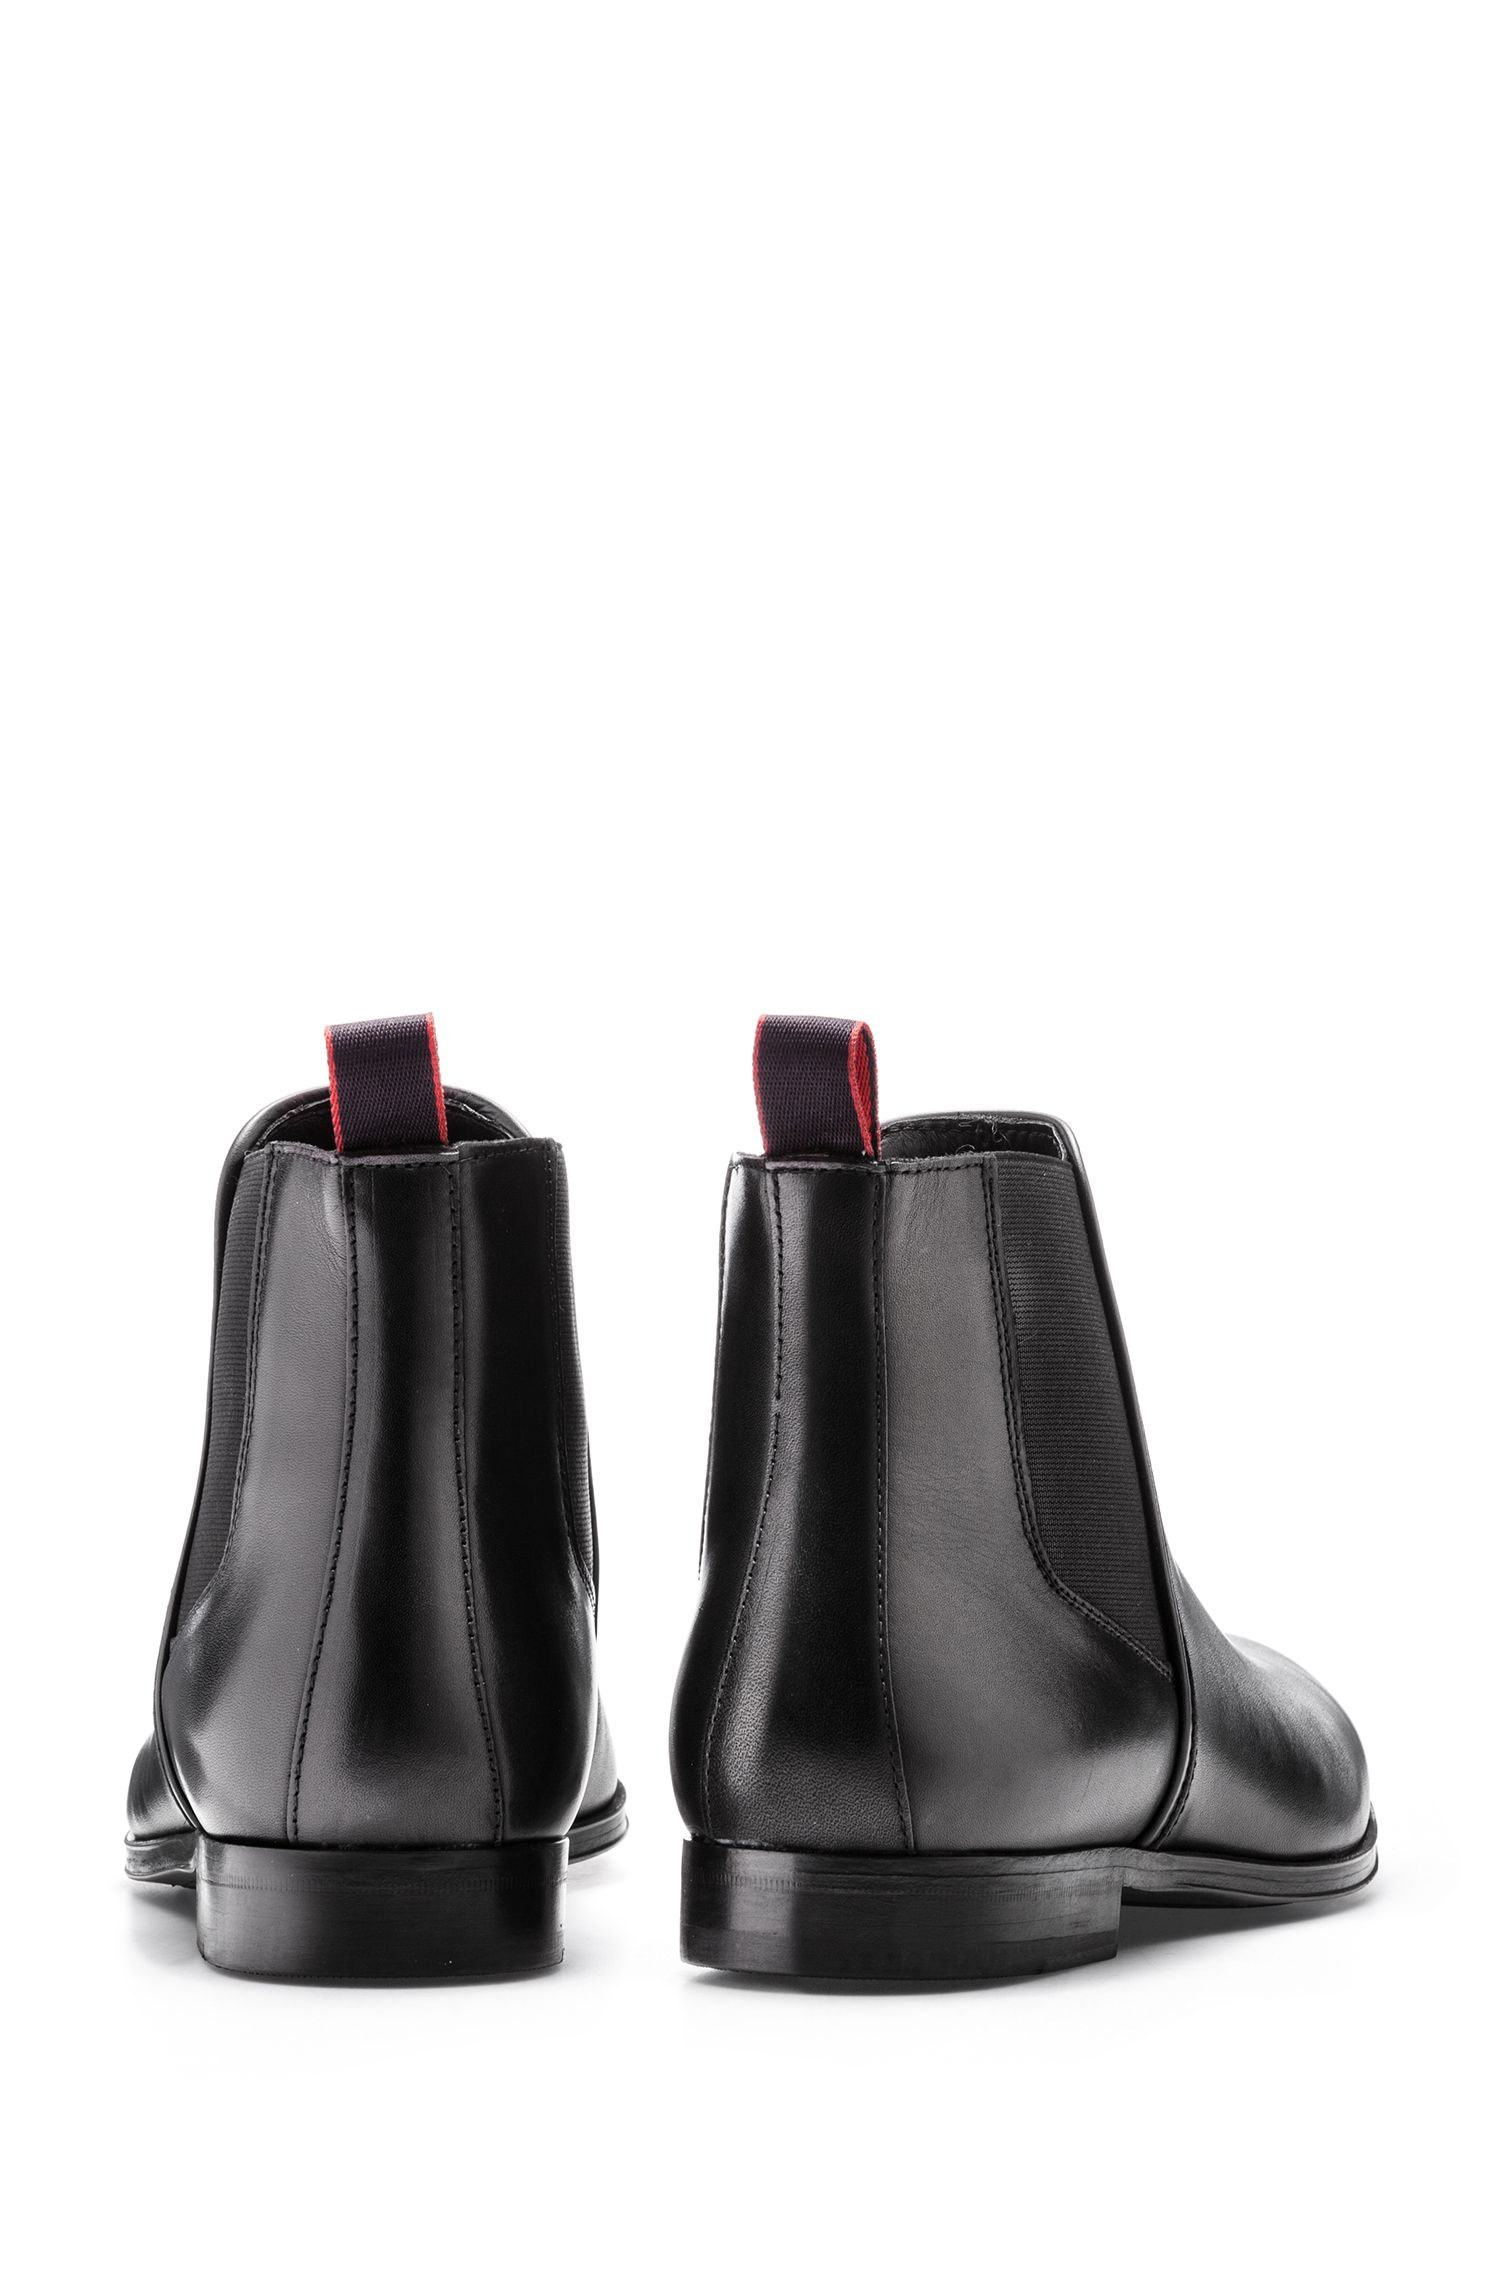 Chelsea boots in smooth calf leather